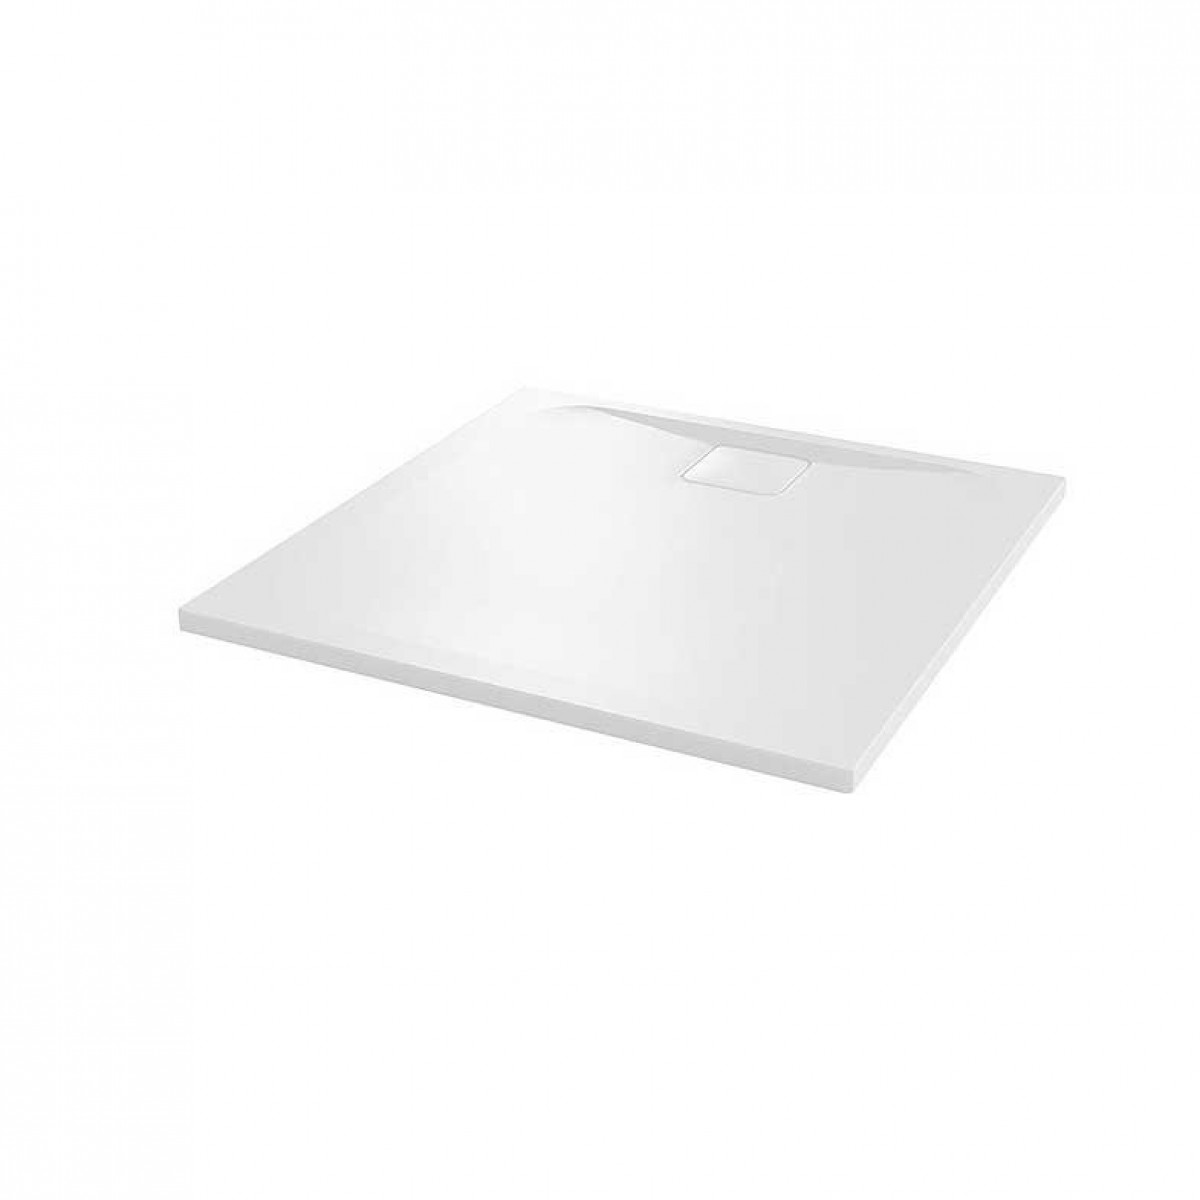 Merlyn Level25 Square Shower Tray 900 X 900mm L179rt